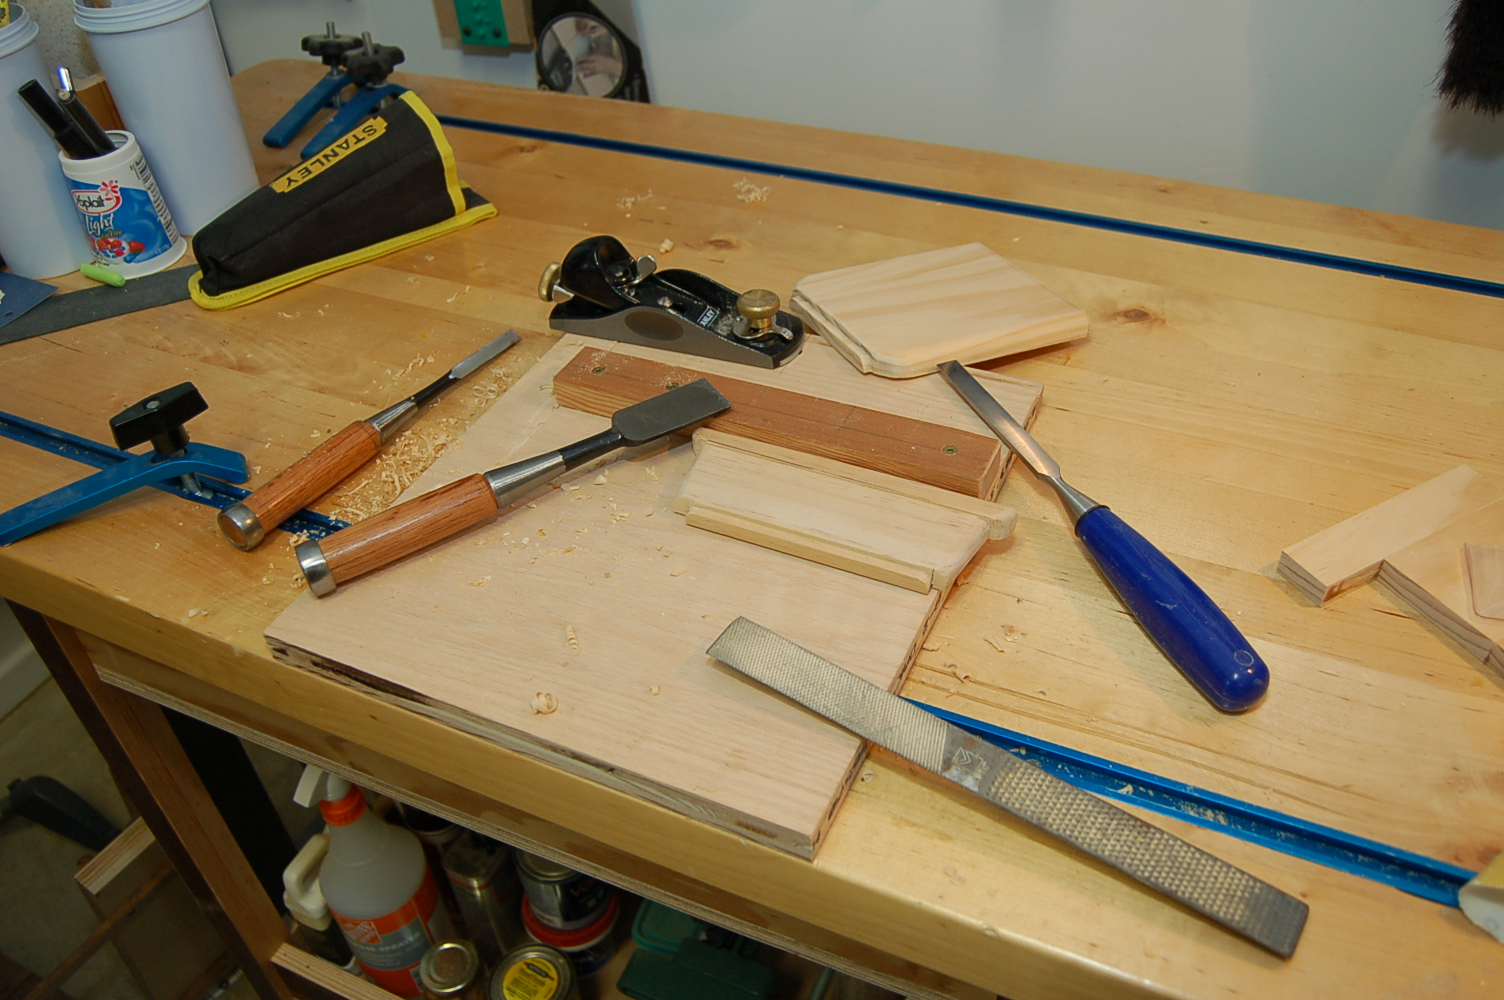 Book Of Woodworking Project Ideas For A Highschooler In ...